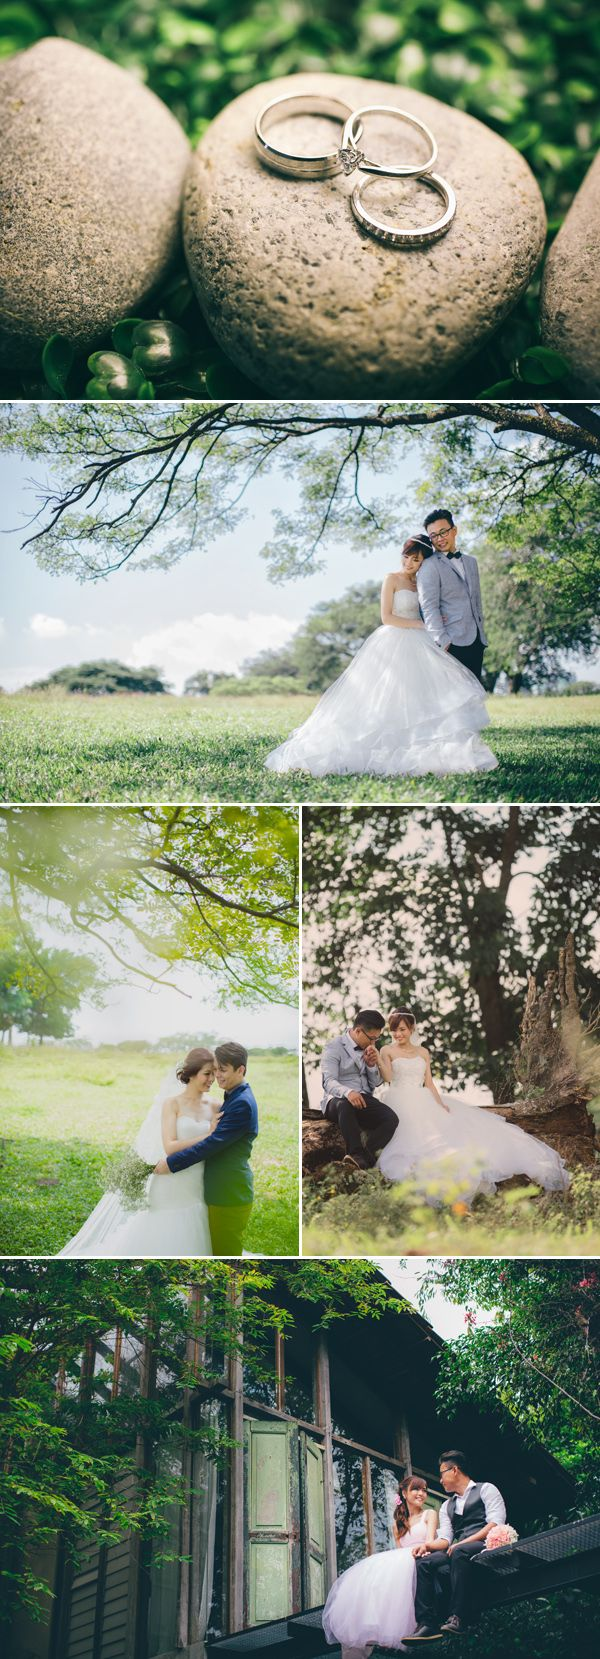 True Love Never Fades – Interview with MJK Photography